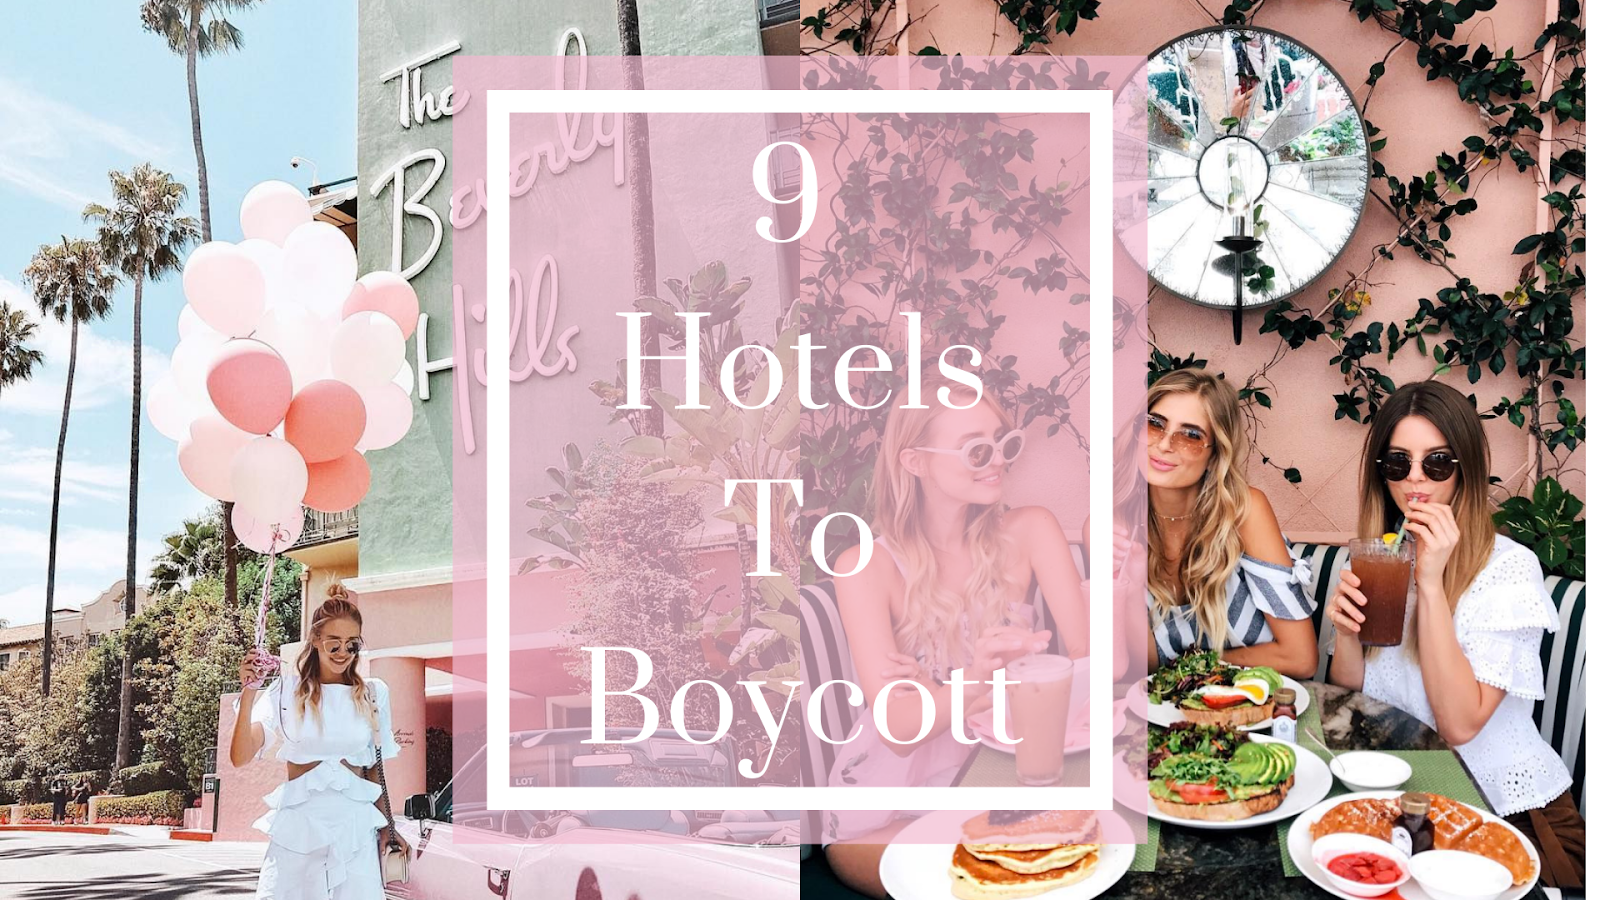 9 hotels you have to boycott as owner introduces anti-LGBTQ+ law to Brunei